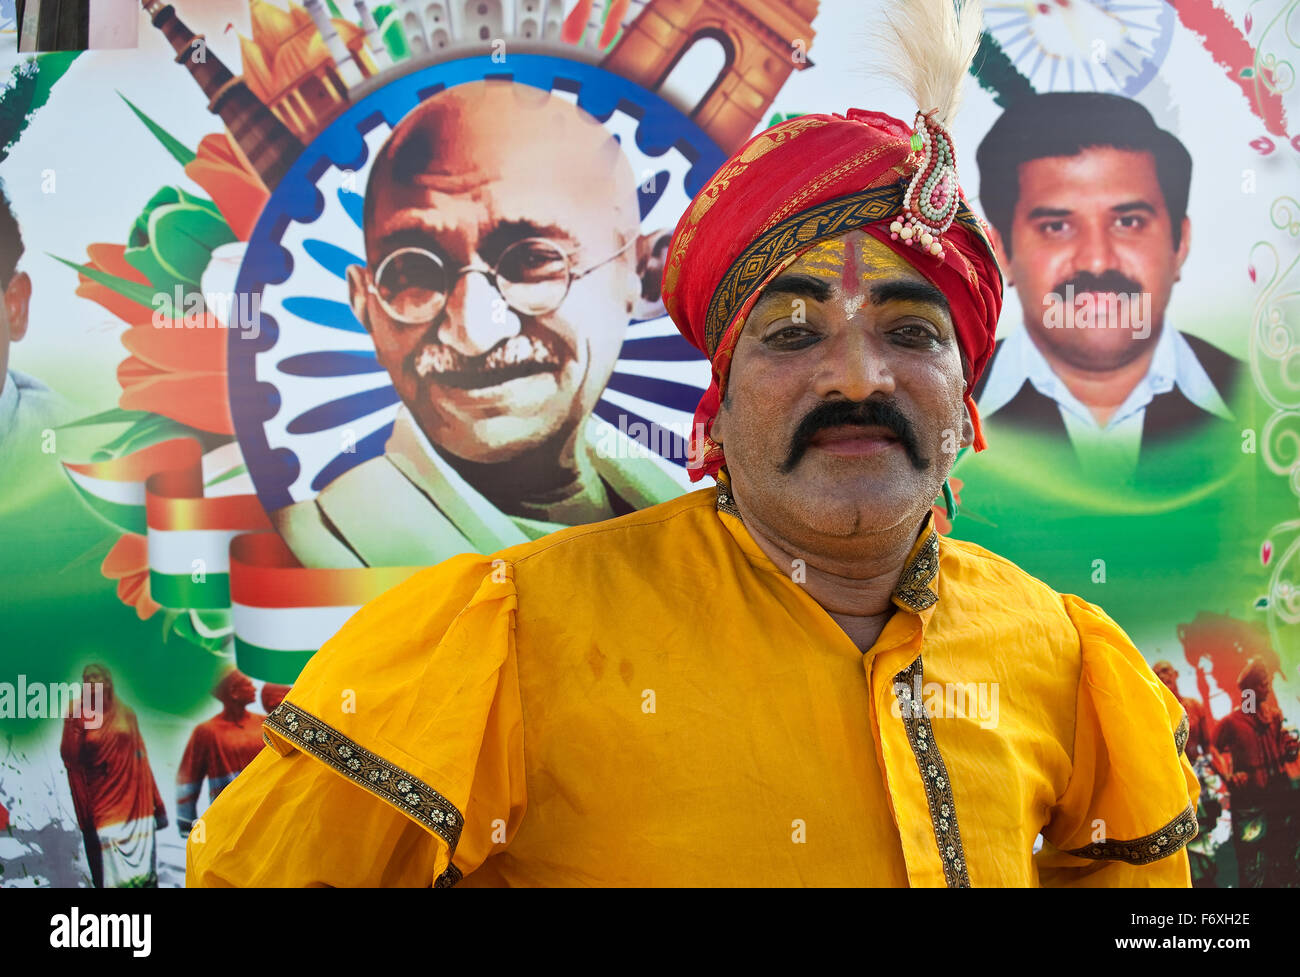 Folk artist participating at a procession at Machilipatnam ( India) - Stock Image